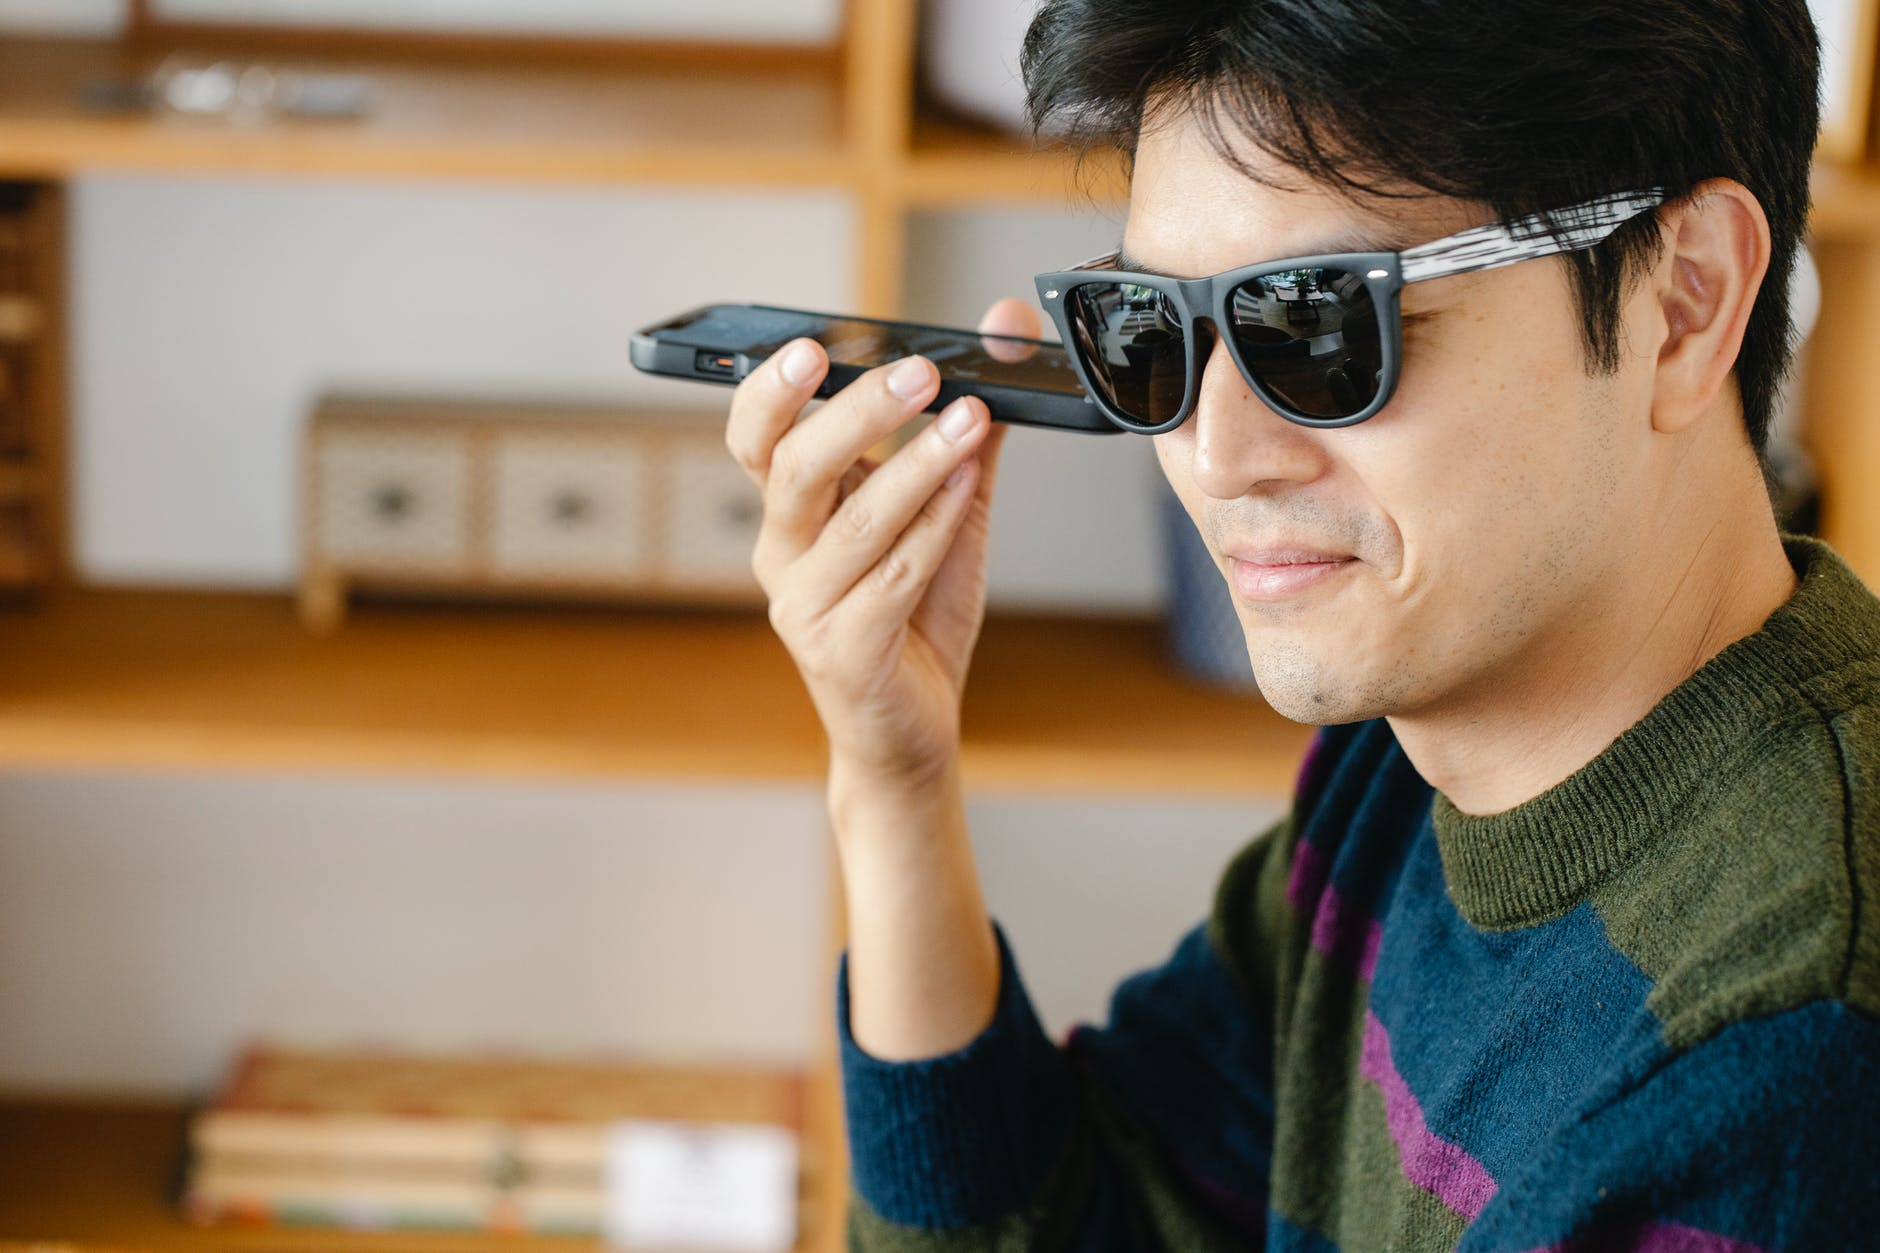 man listening closely on his mobile phone